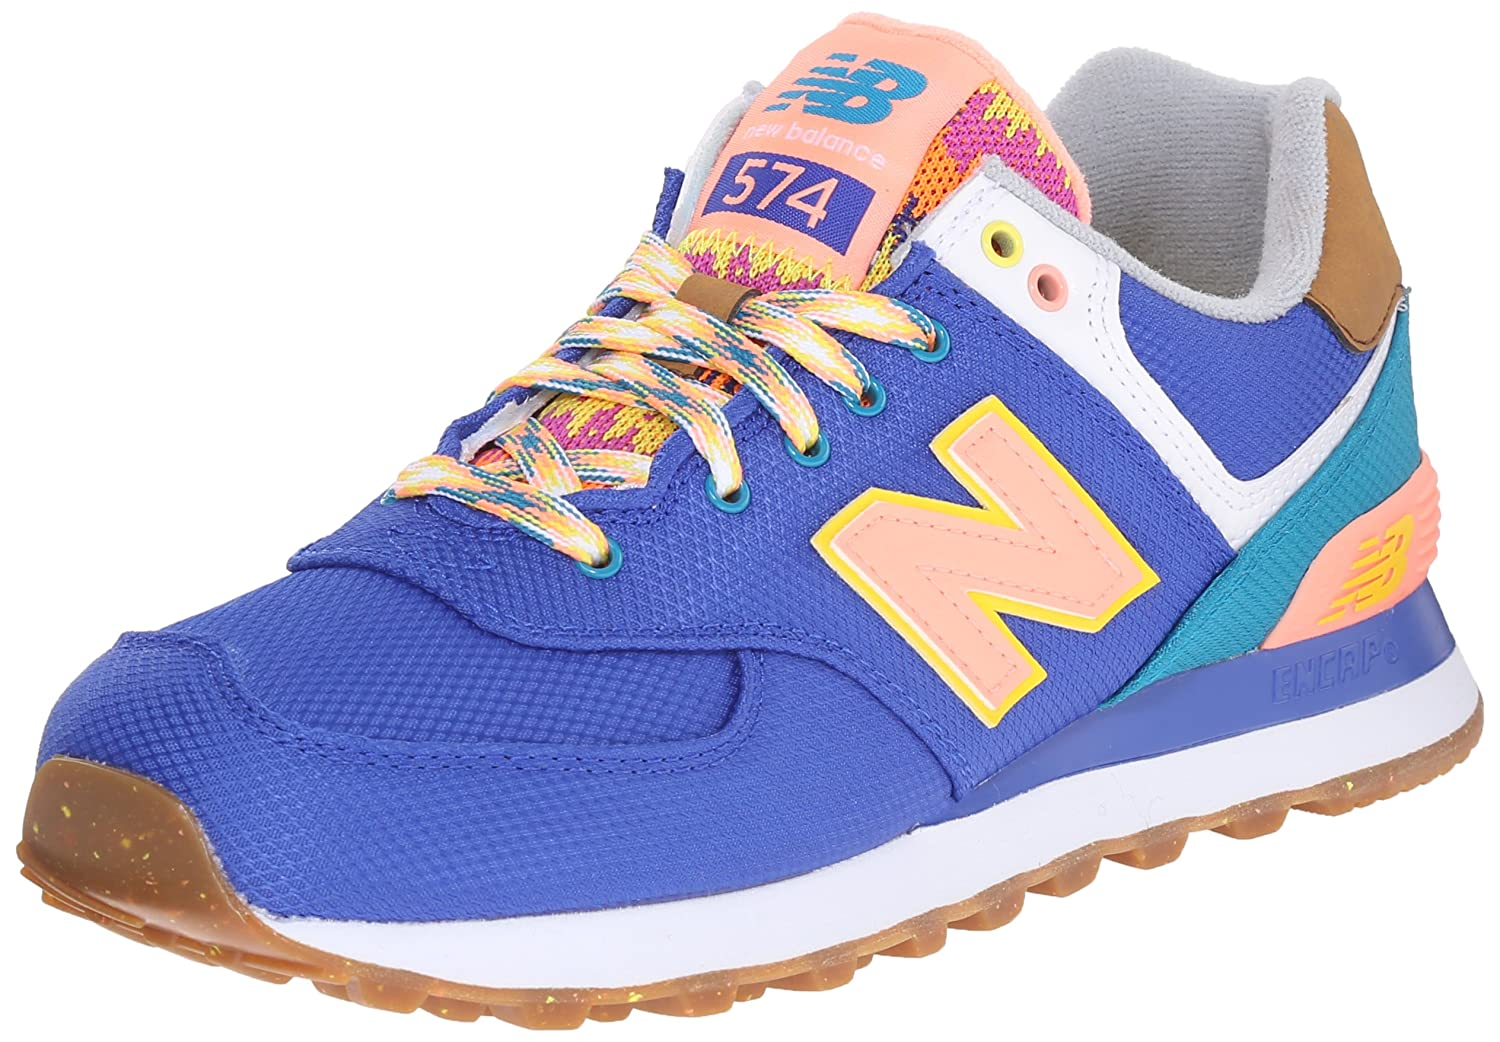 New Balance Multicolore Wl574, Bottes Classiques 19992 Femme Bottes Multicolore (Pacific) 0feb62c - fast-weightloss-diet.space